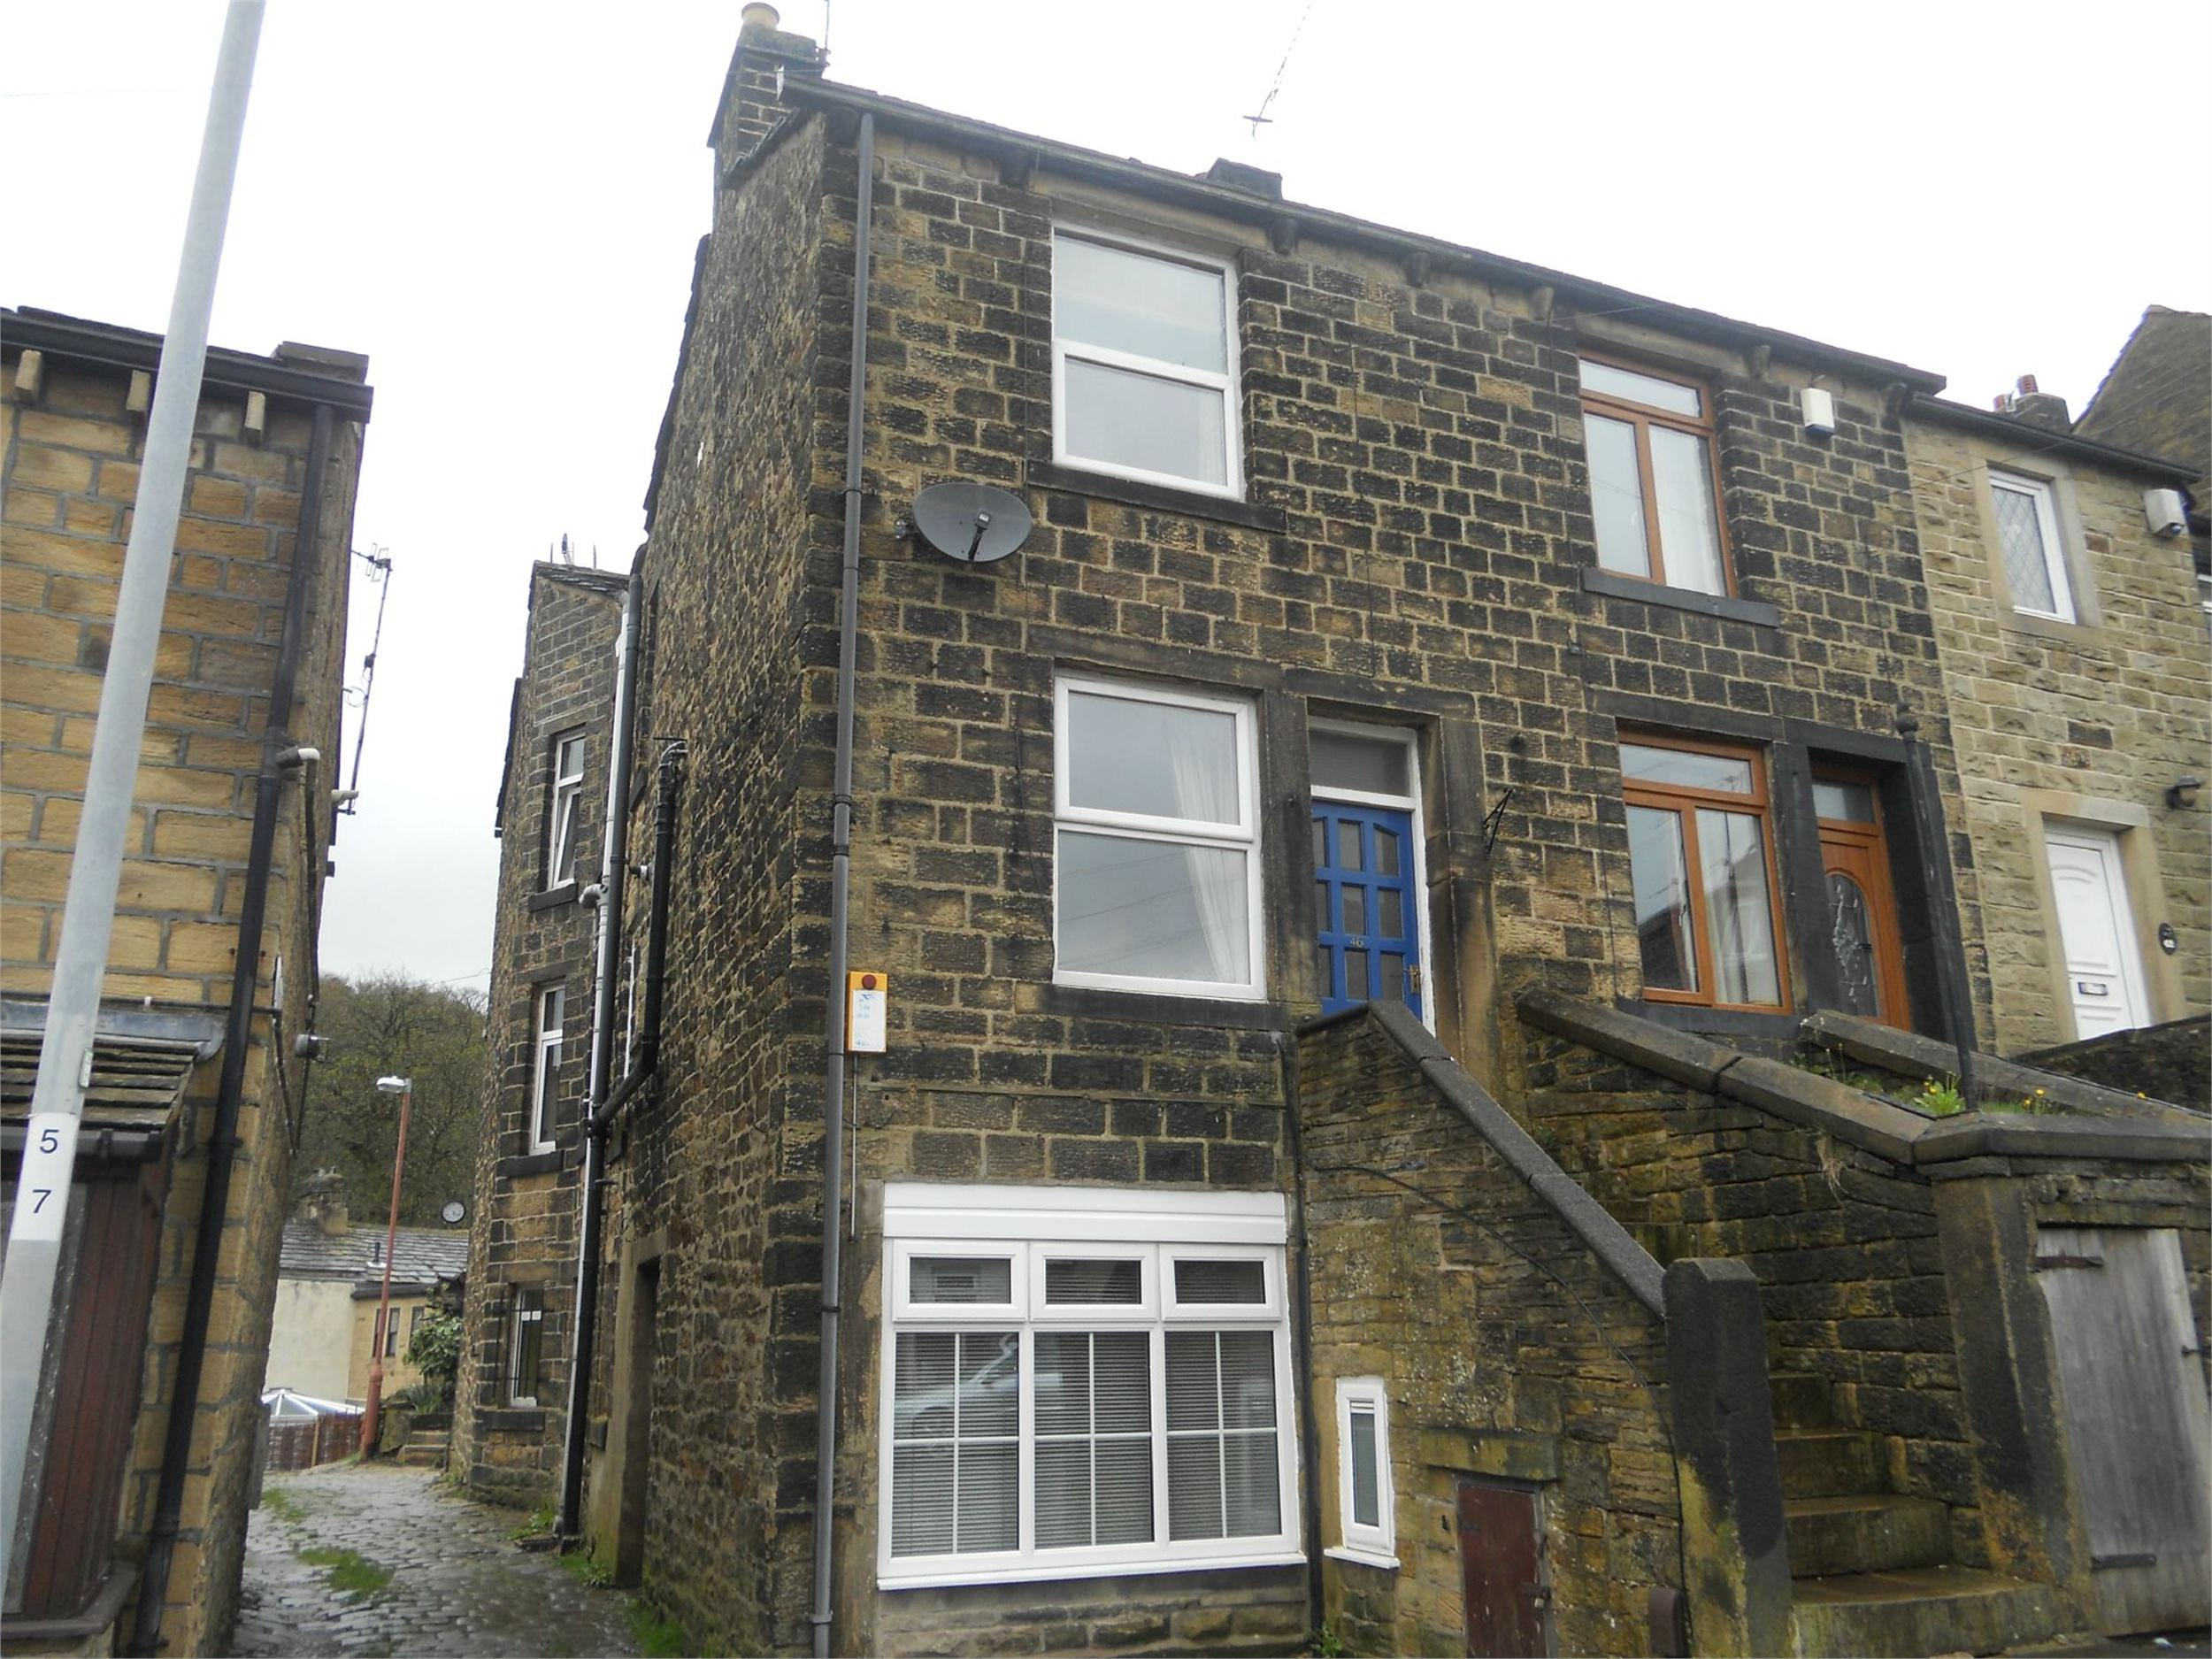 Yorkshire Terrace: Whitegates Keighley 2 Bedroom Terraced House For Sale In